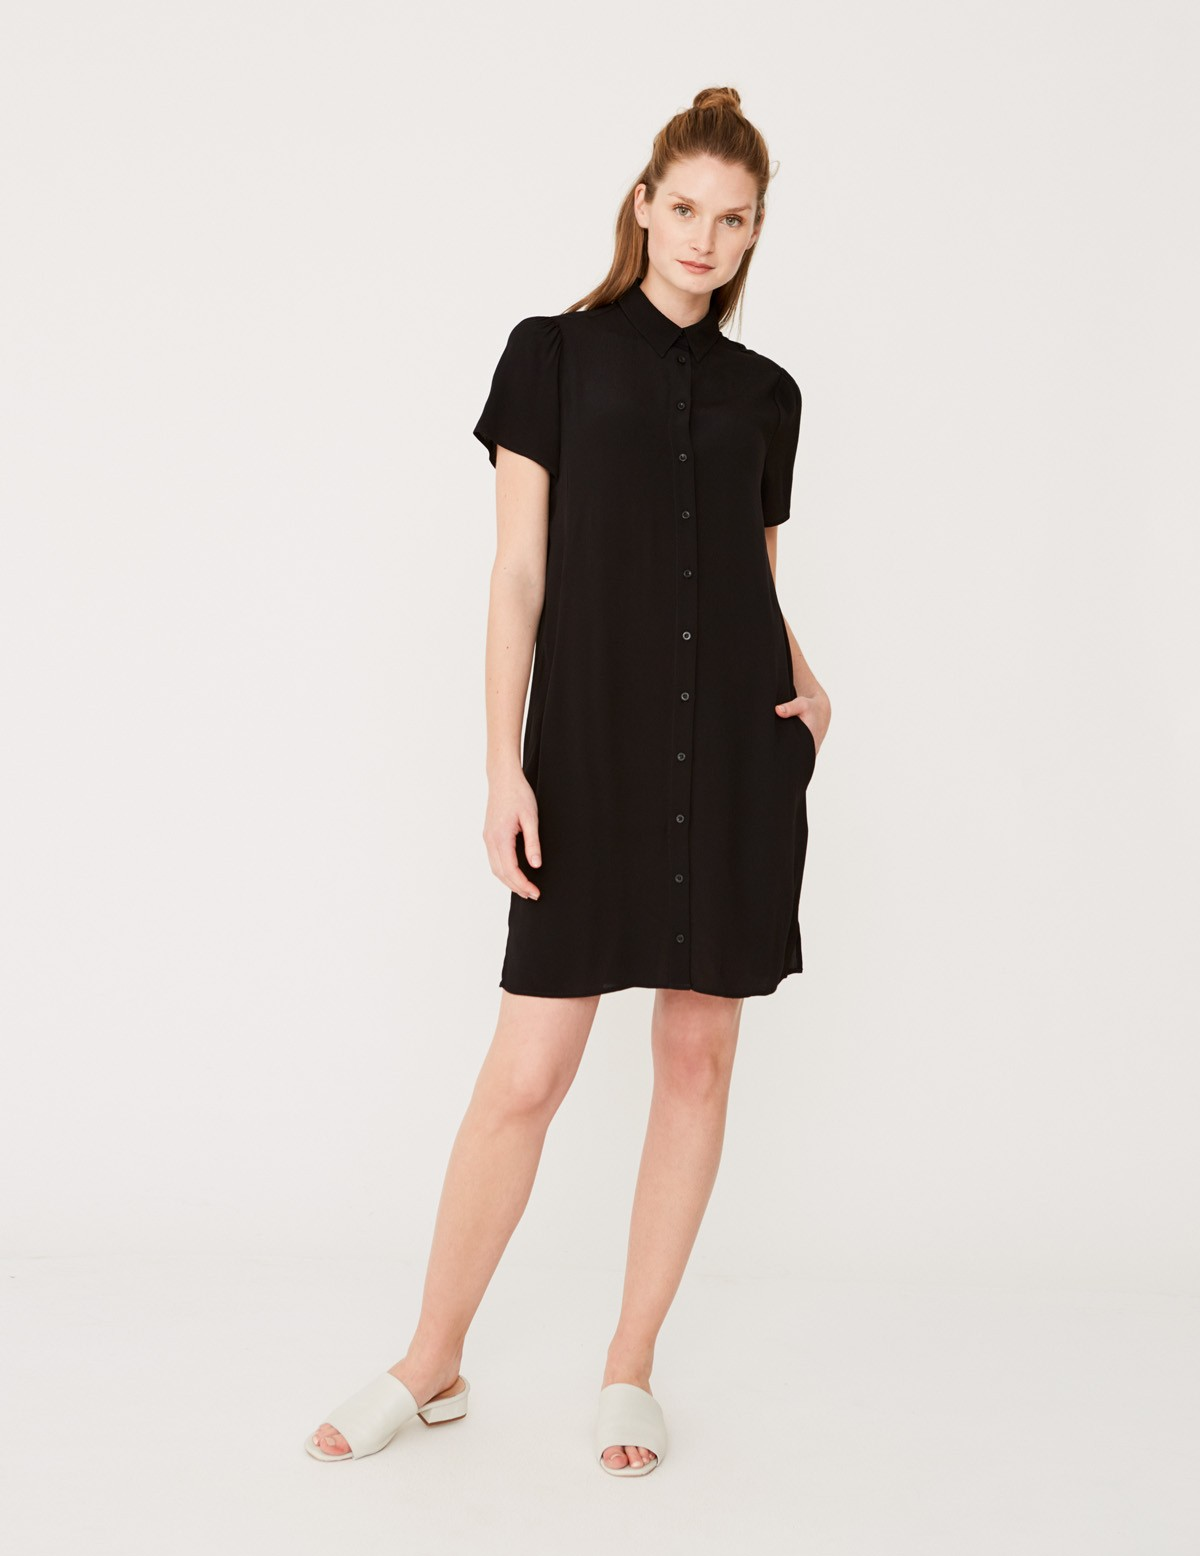 Flowing shirt-like dress